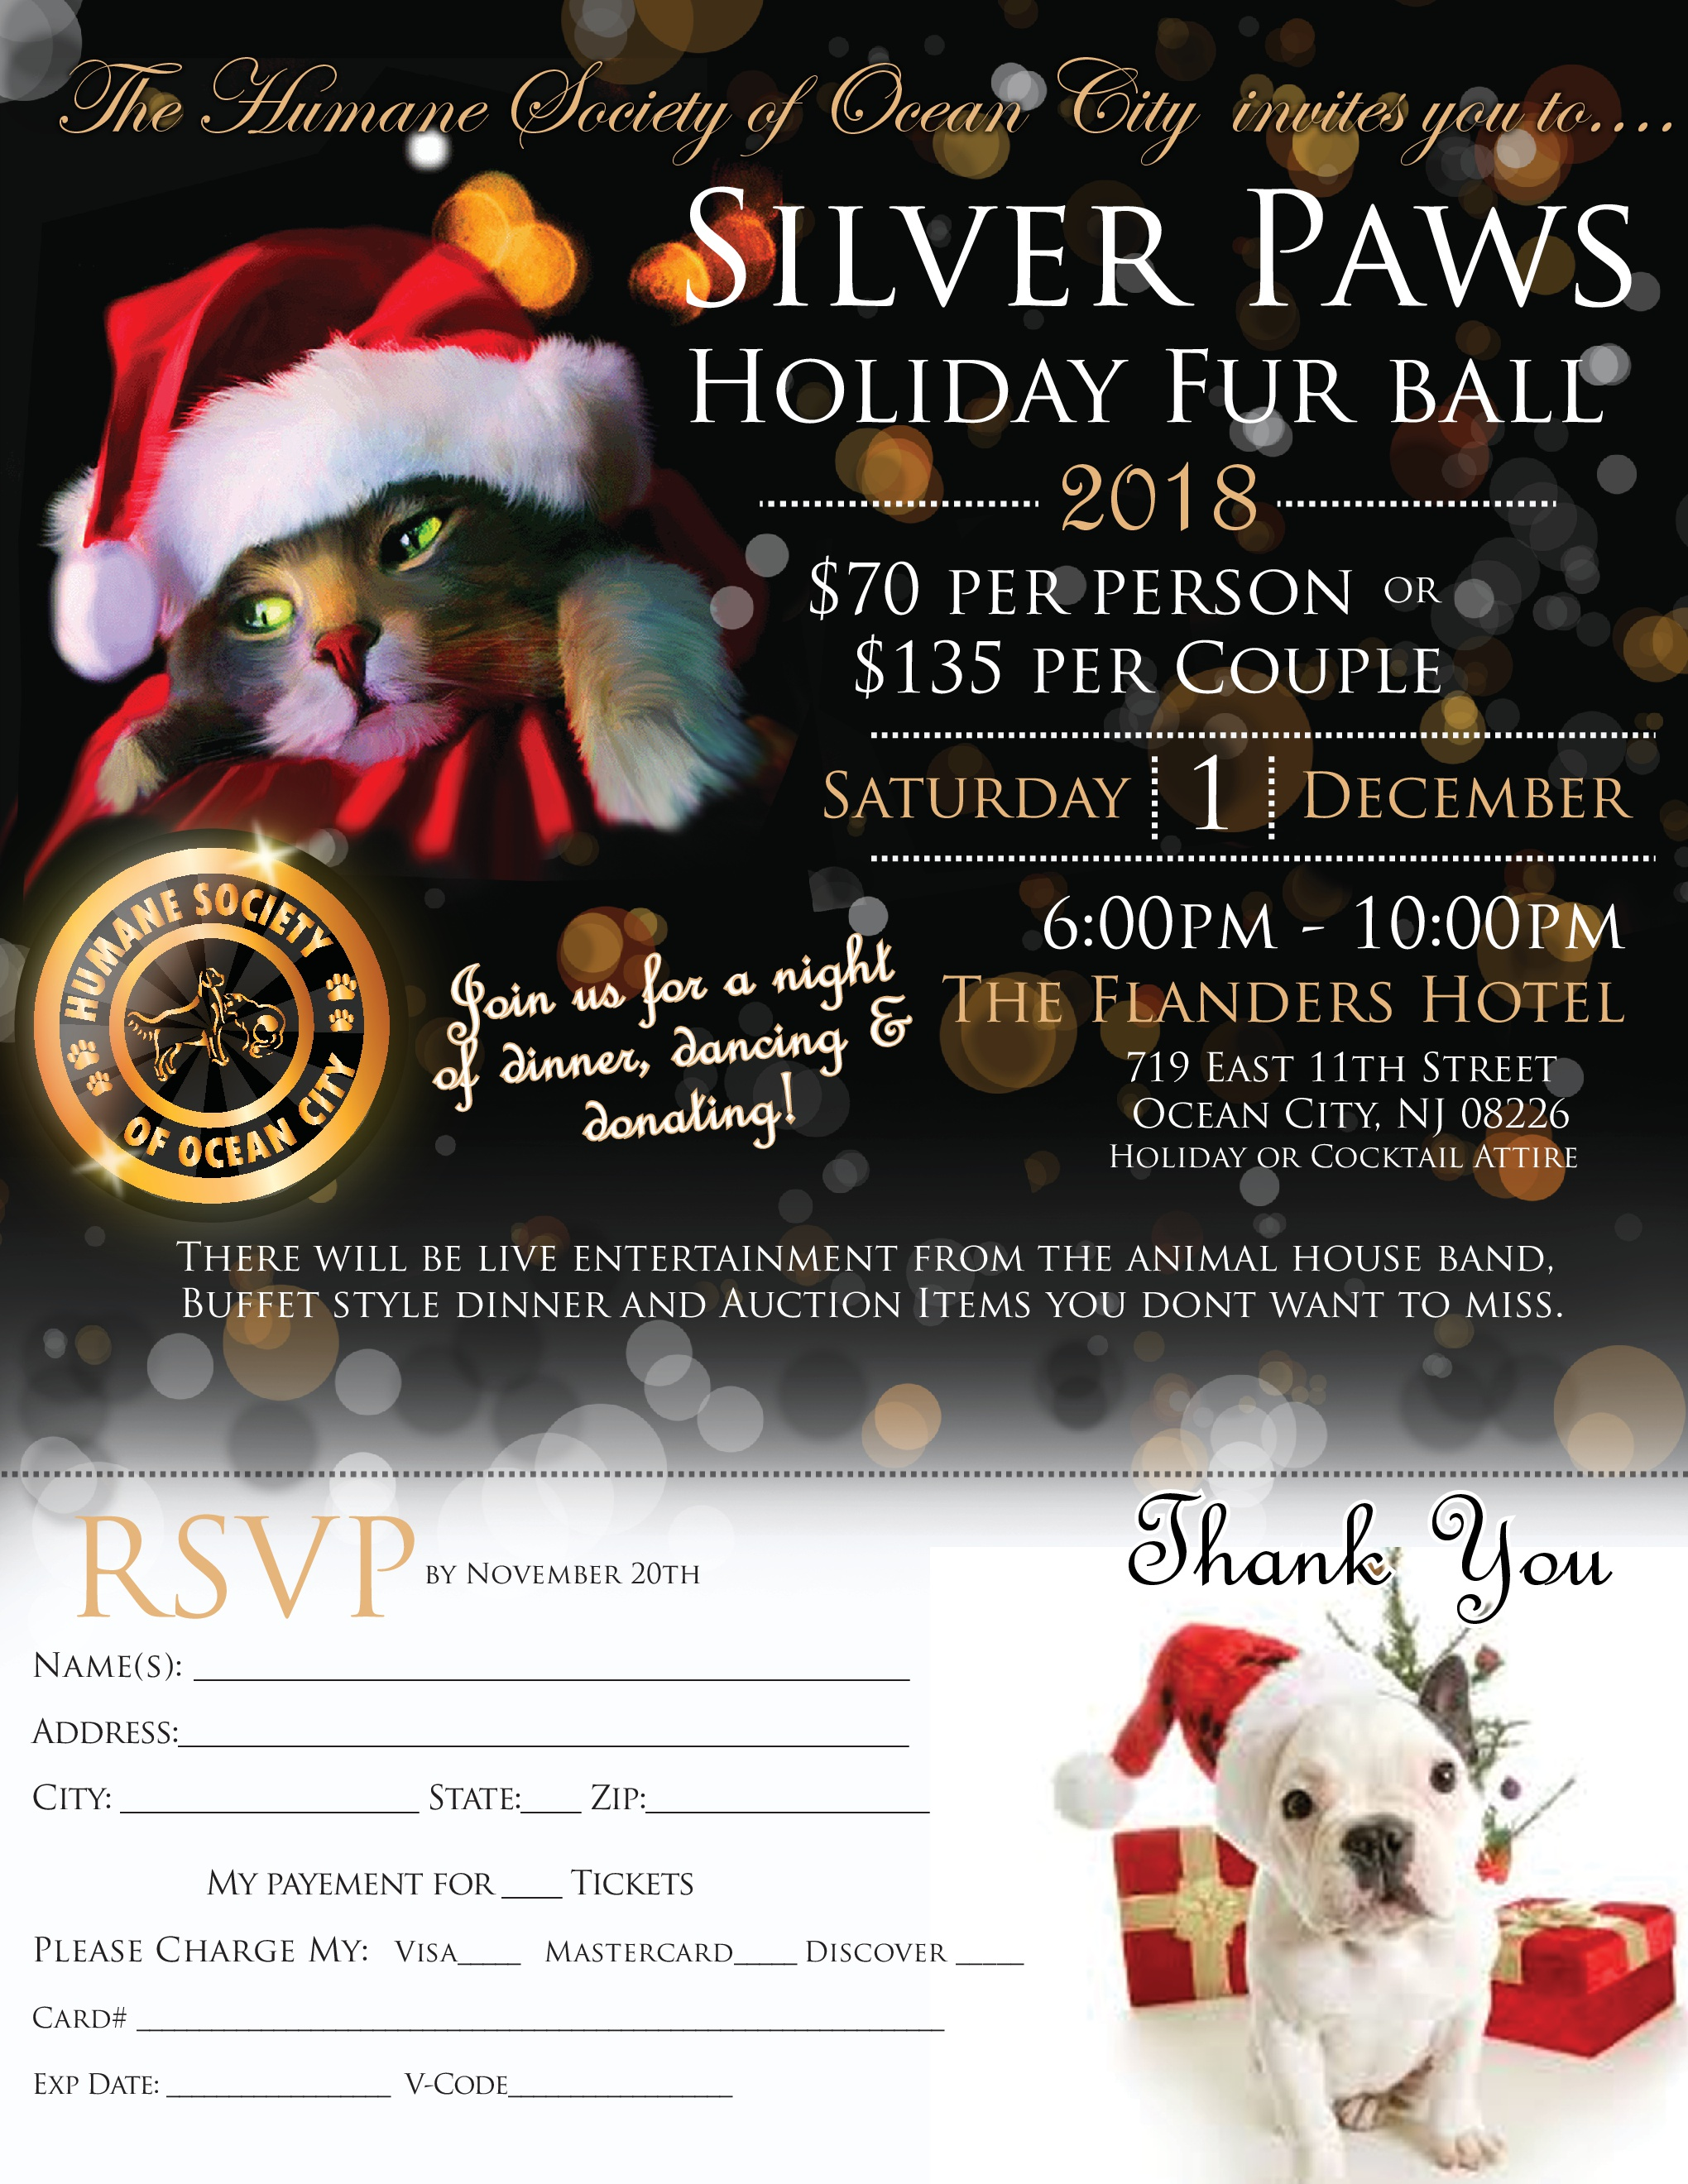 Dec 1st - Silver Paws Holiday Fur Ball @ Flanders